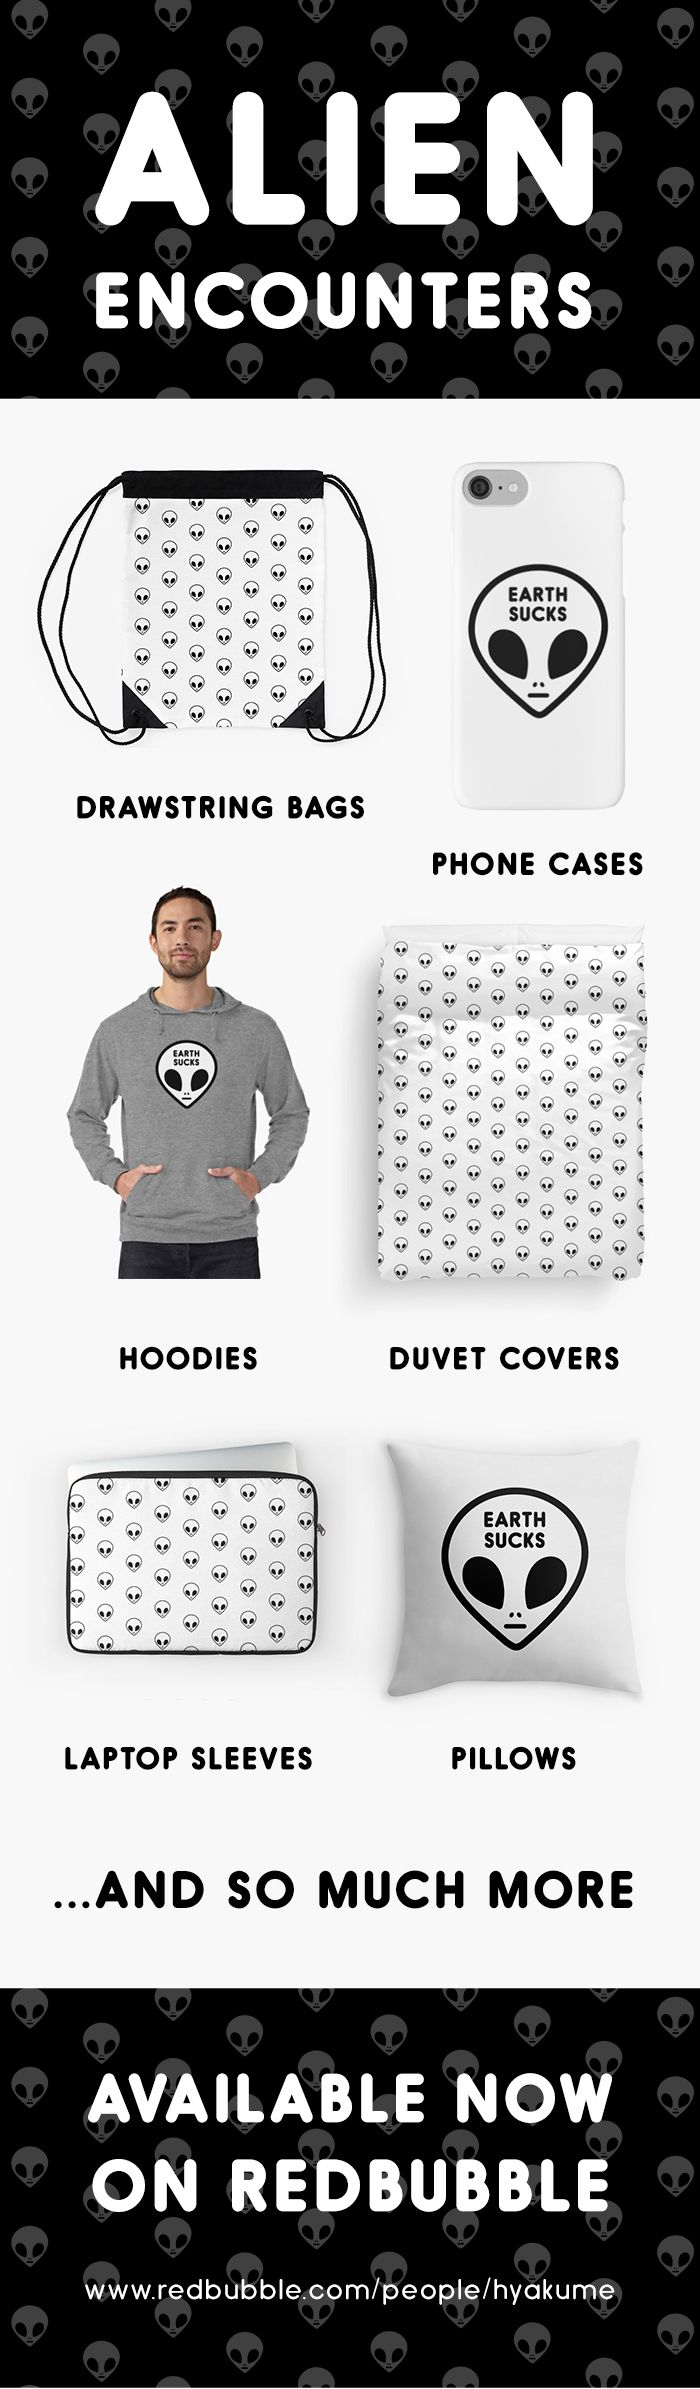 alien encounters - cool, simple and funny alternative indie minimalist grunge aesthetic black and white alien pattern designs inspired by and appreciating outer space - alien designs available on iPhone cases, covers and skins, laptop sleeves, home decor items, apparel, stationery, and so much more http://www.redbubble.com/people/hyakume check out my #minimalist #alien #iphone7 case designs @redbubble